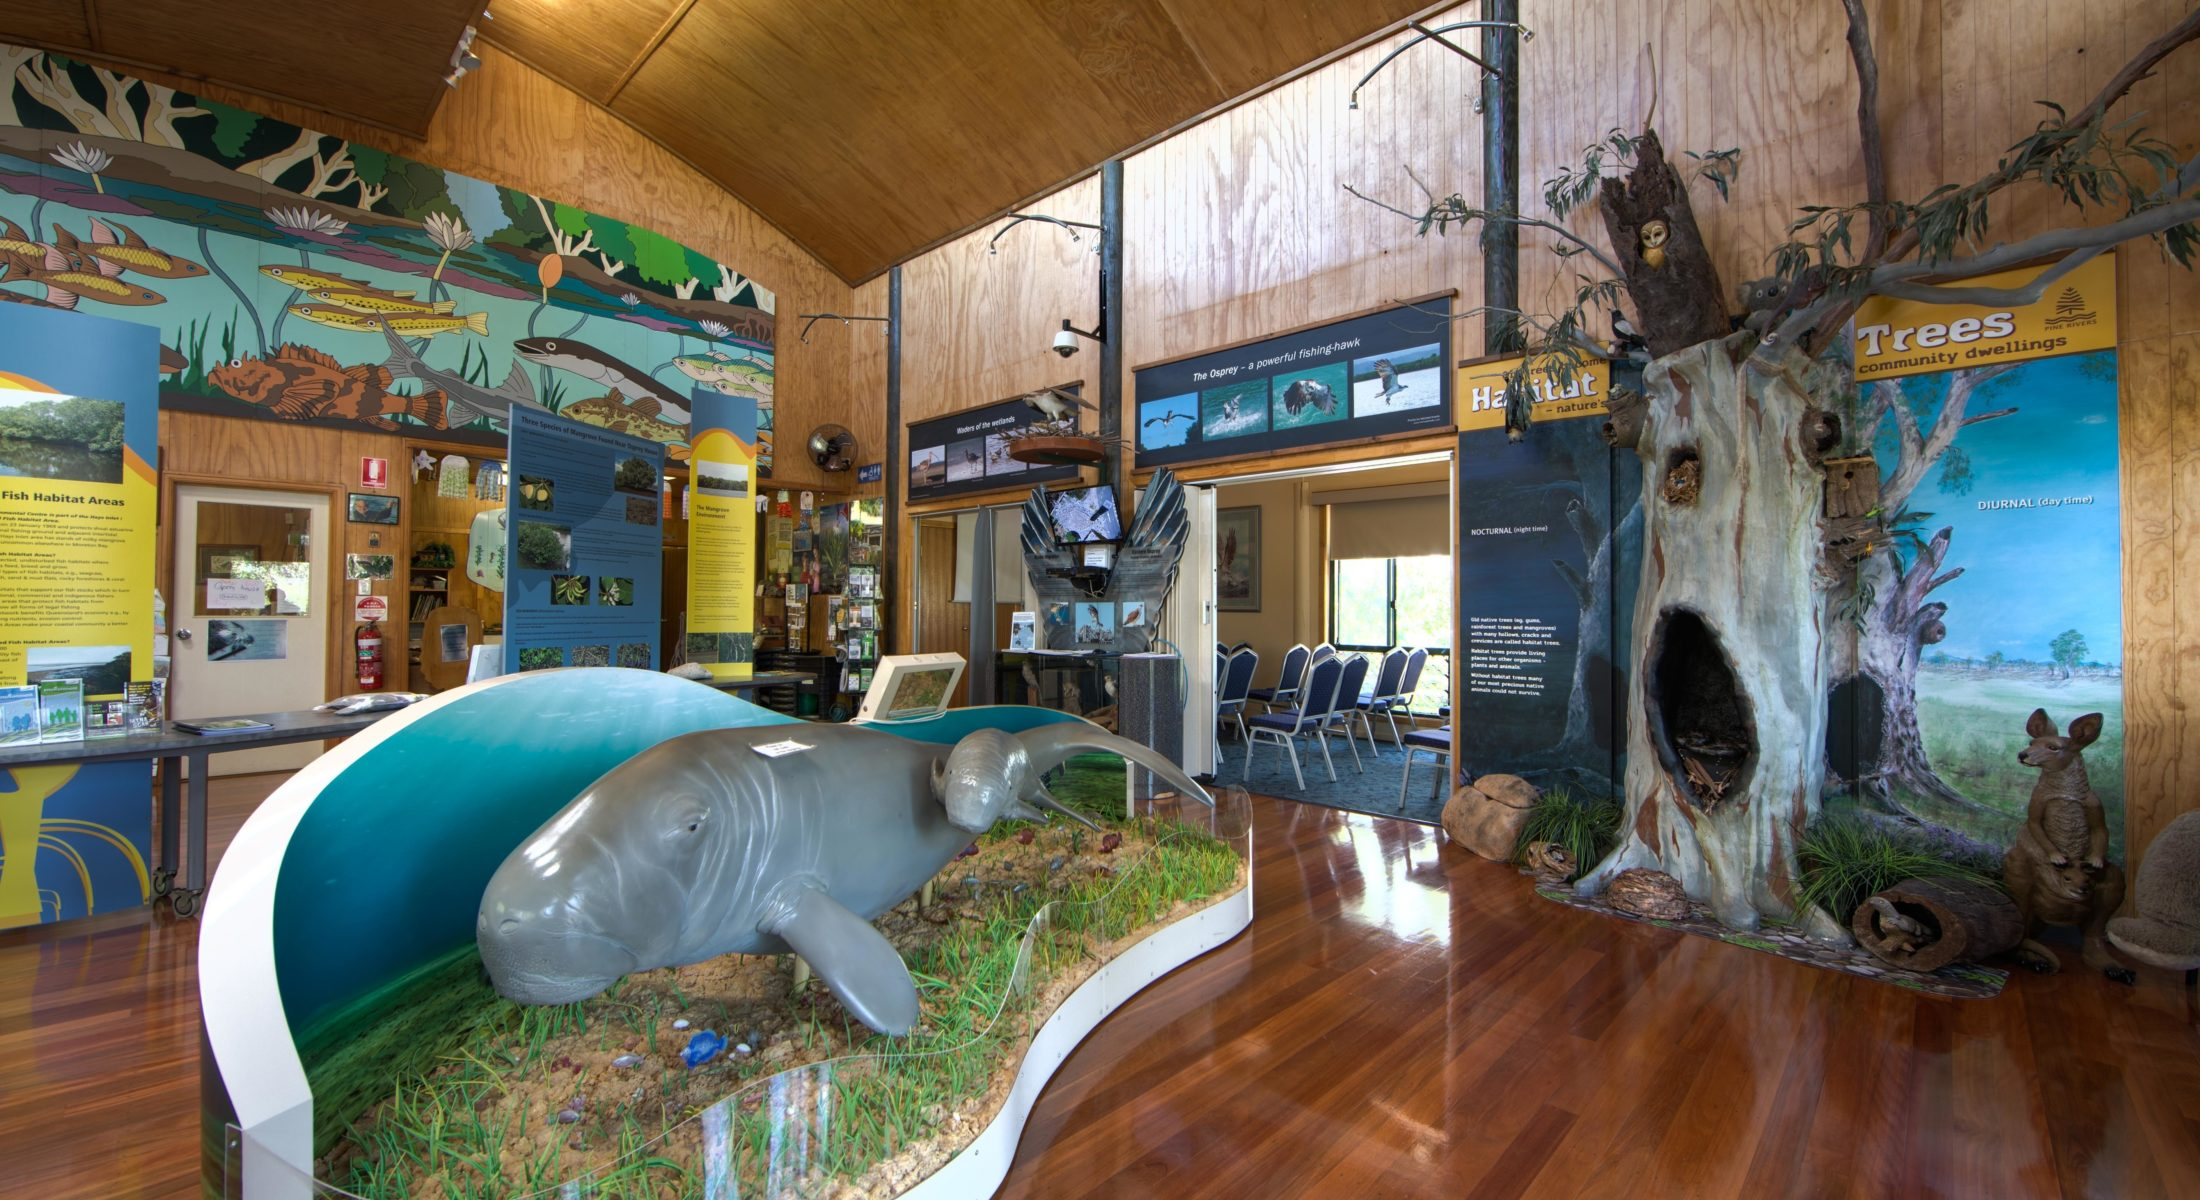 Explore the educational information at Osprey House, the volunteers can tell you all about the local osprey and dugong population